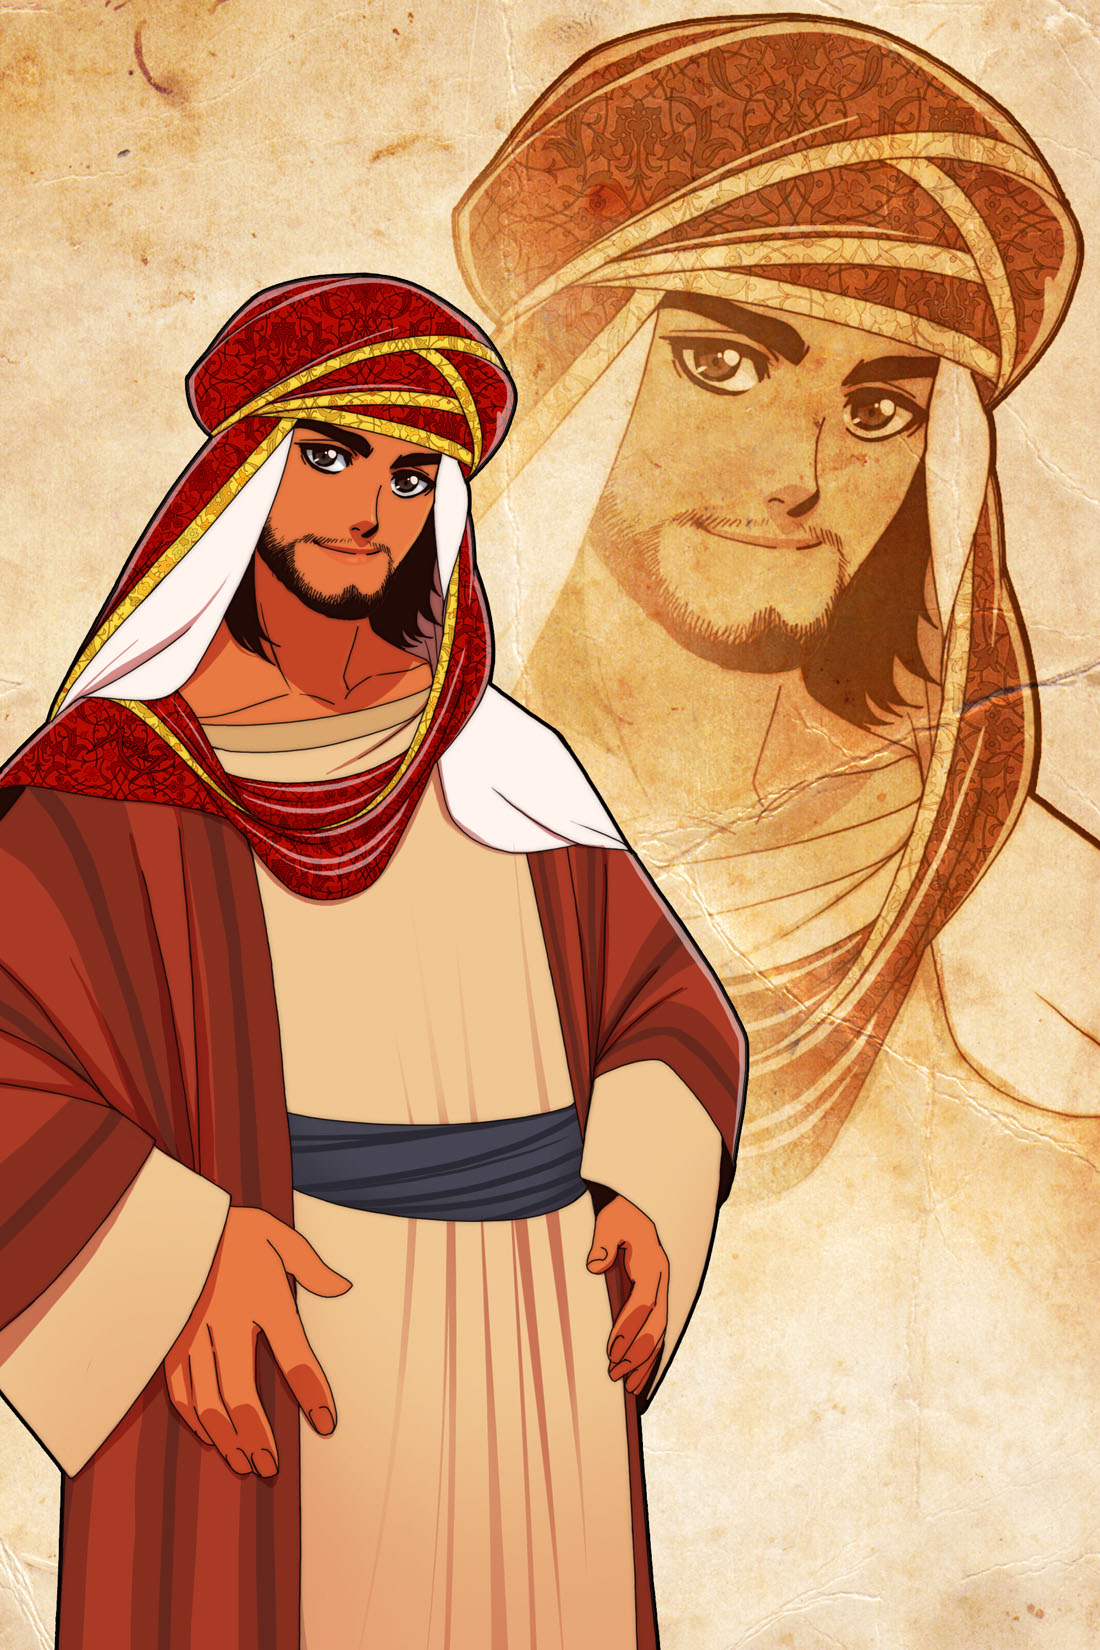 An Ancient Arab by Nayzak on DeviantArt Ancient Muslim Clothing For Men